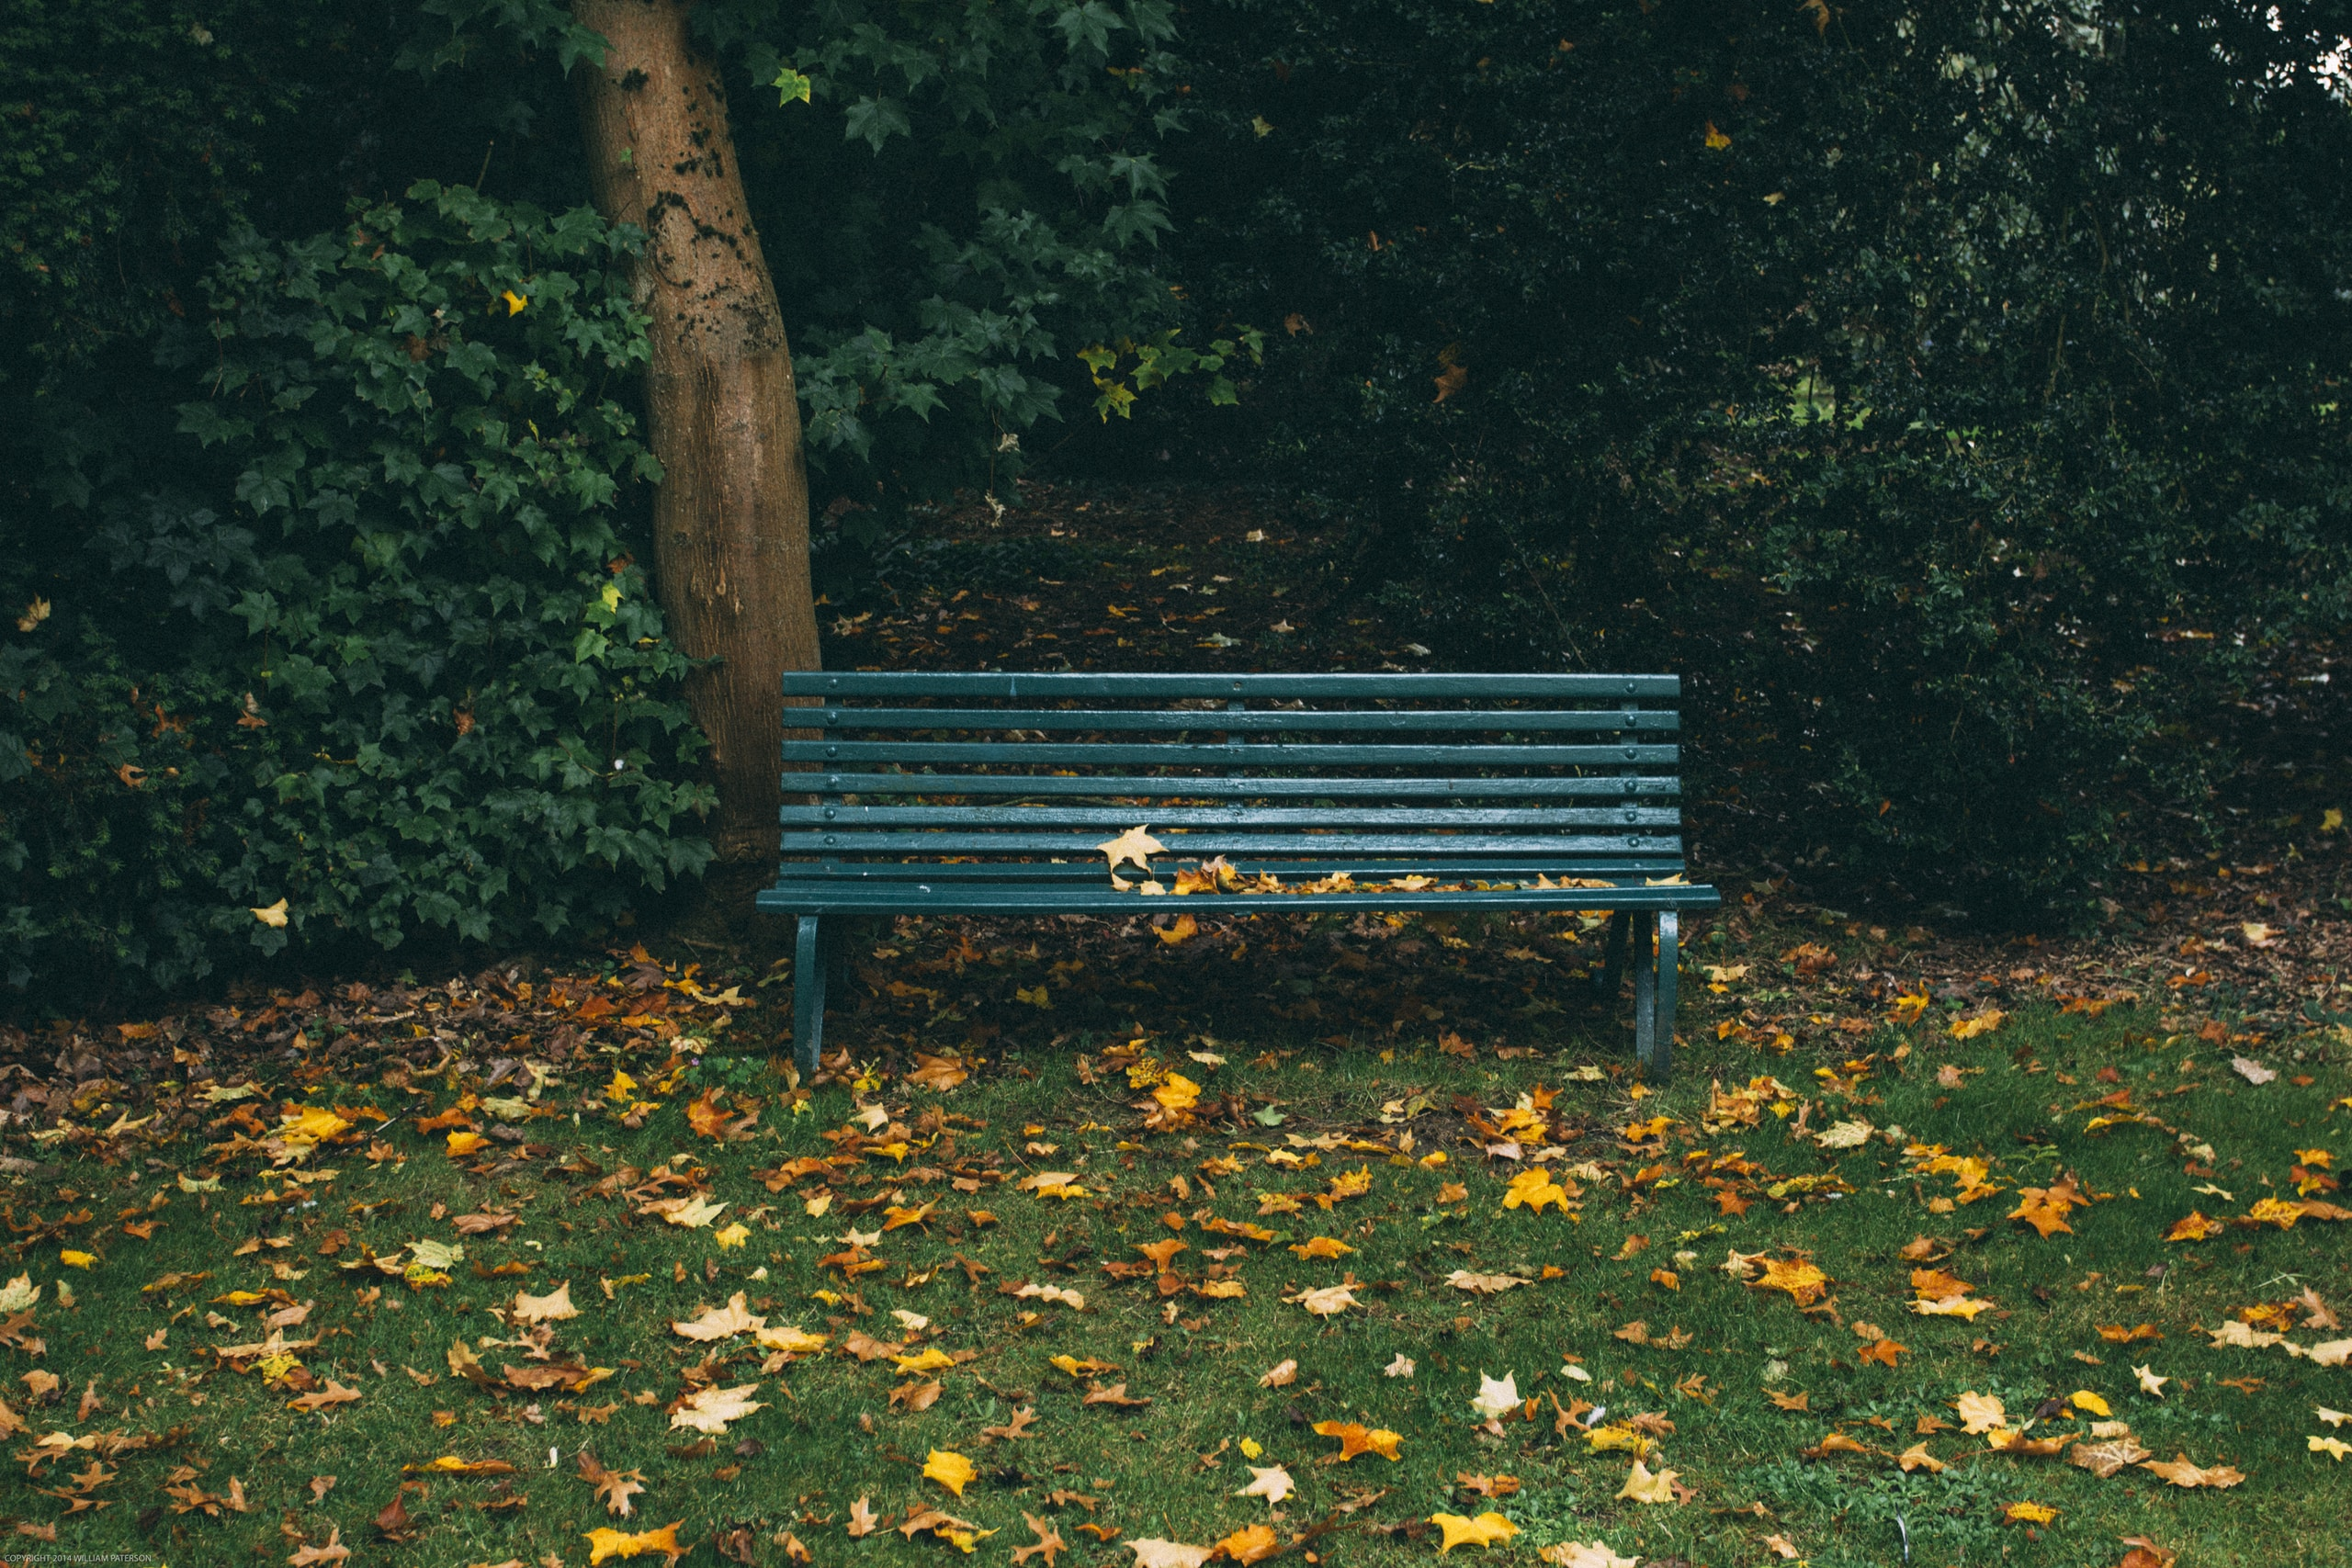 green wooden bench and autumn leaves on grass covered field near trees during day